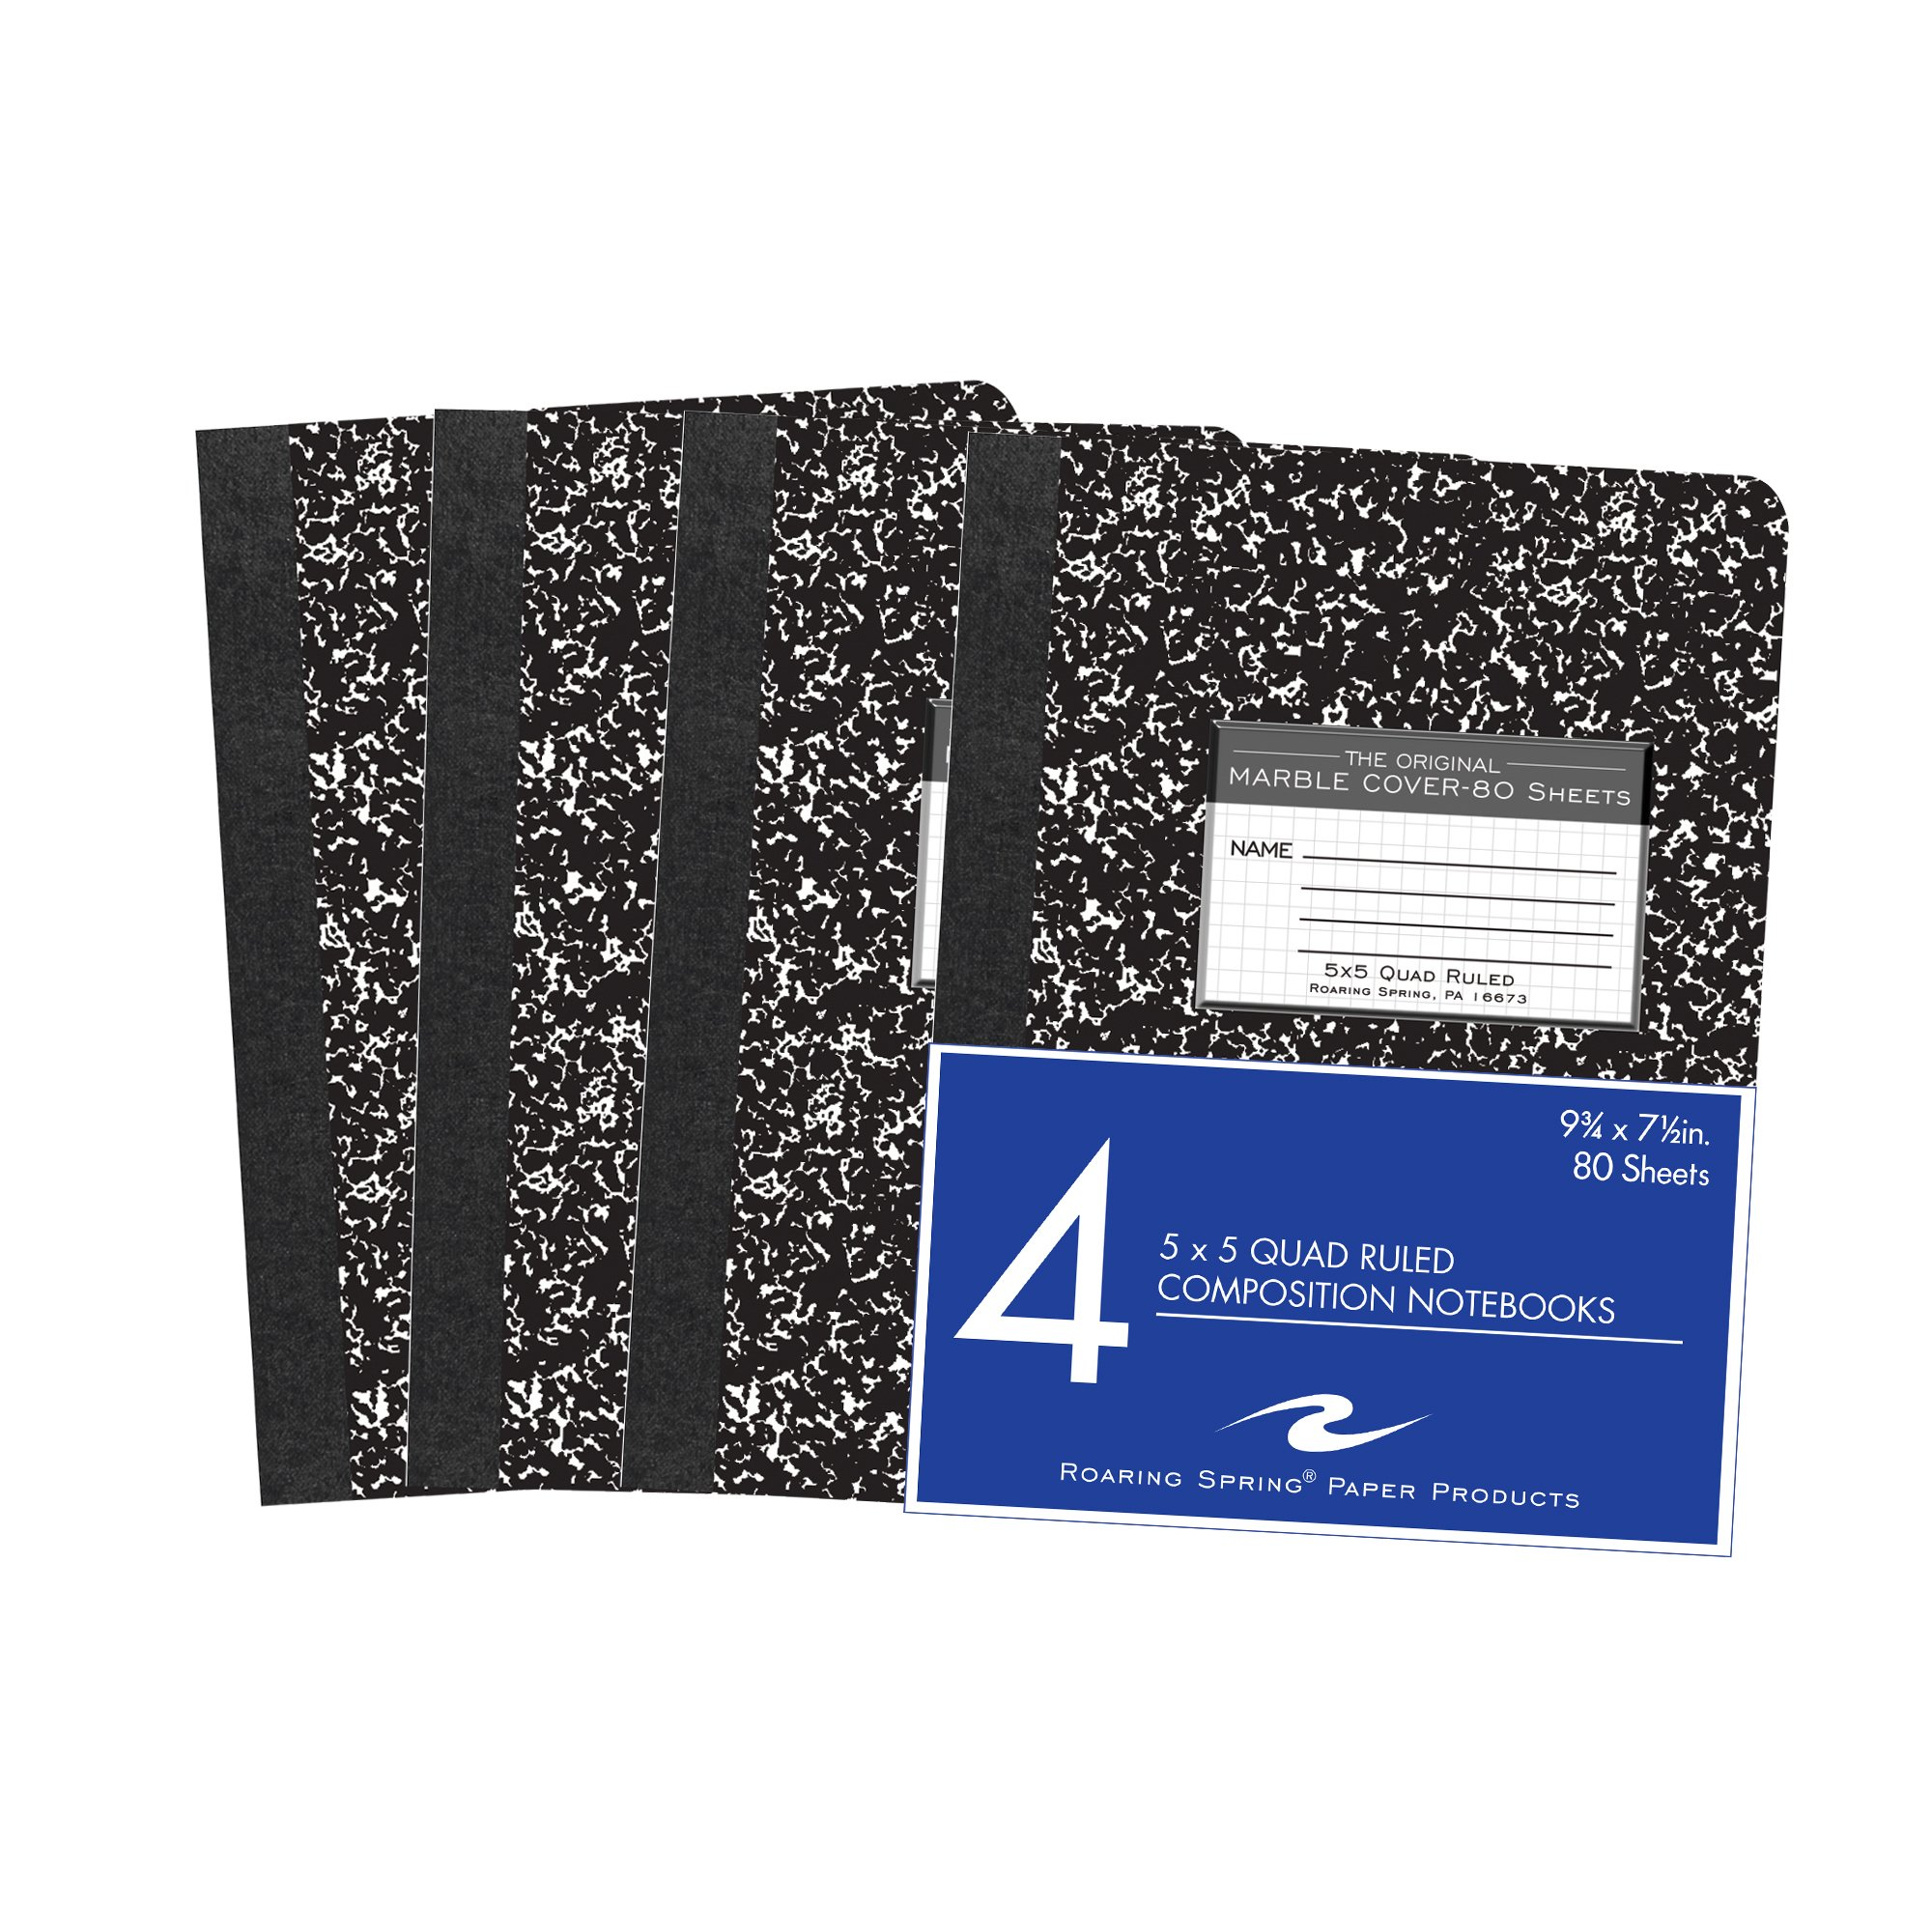 Roaring Spring Hard Cover Composition Book, 9 3/4'' x 7 1/2'', 5x5 Graph Ruled, 80 sheets 4/pk